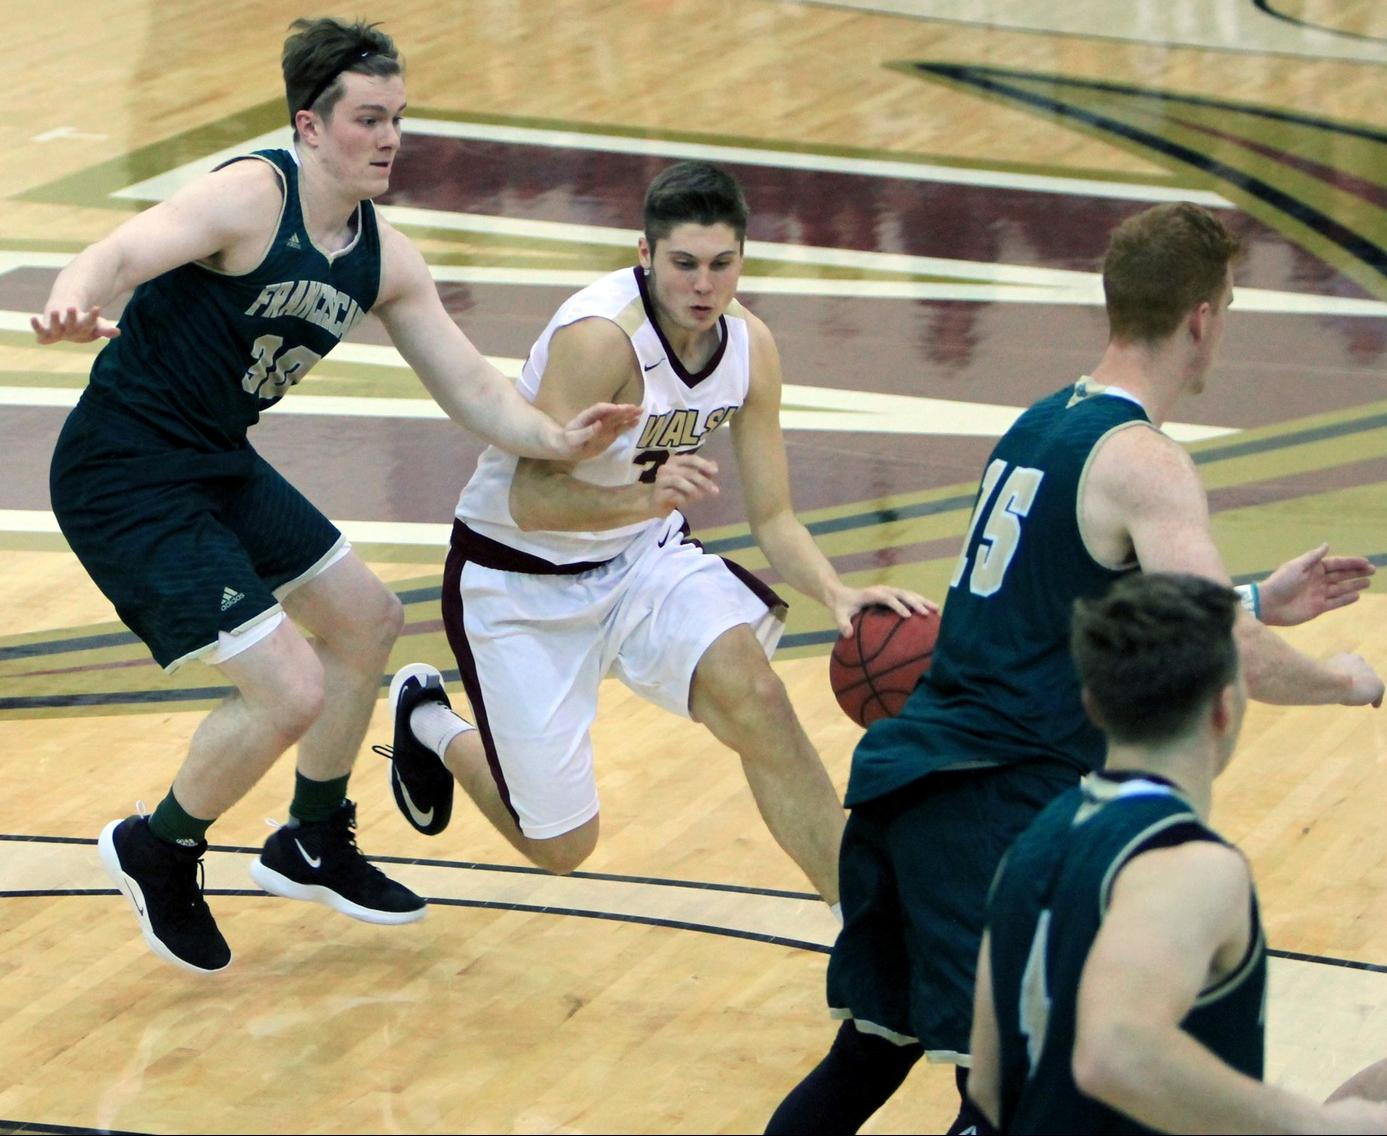 Cavs Split on the Road Following 67-63 Loss at Trevecca